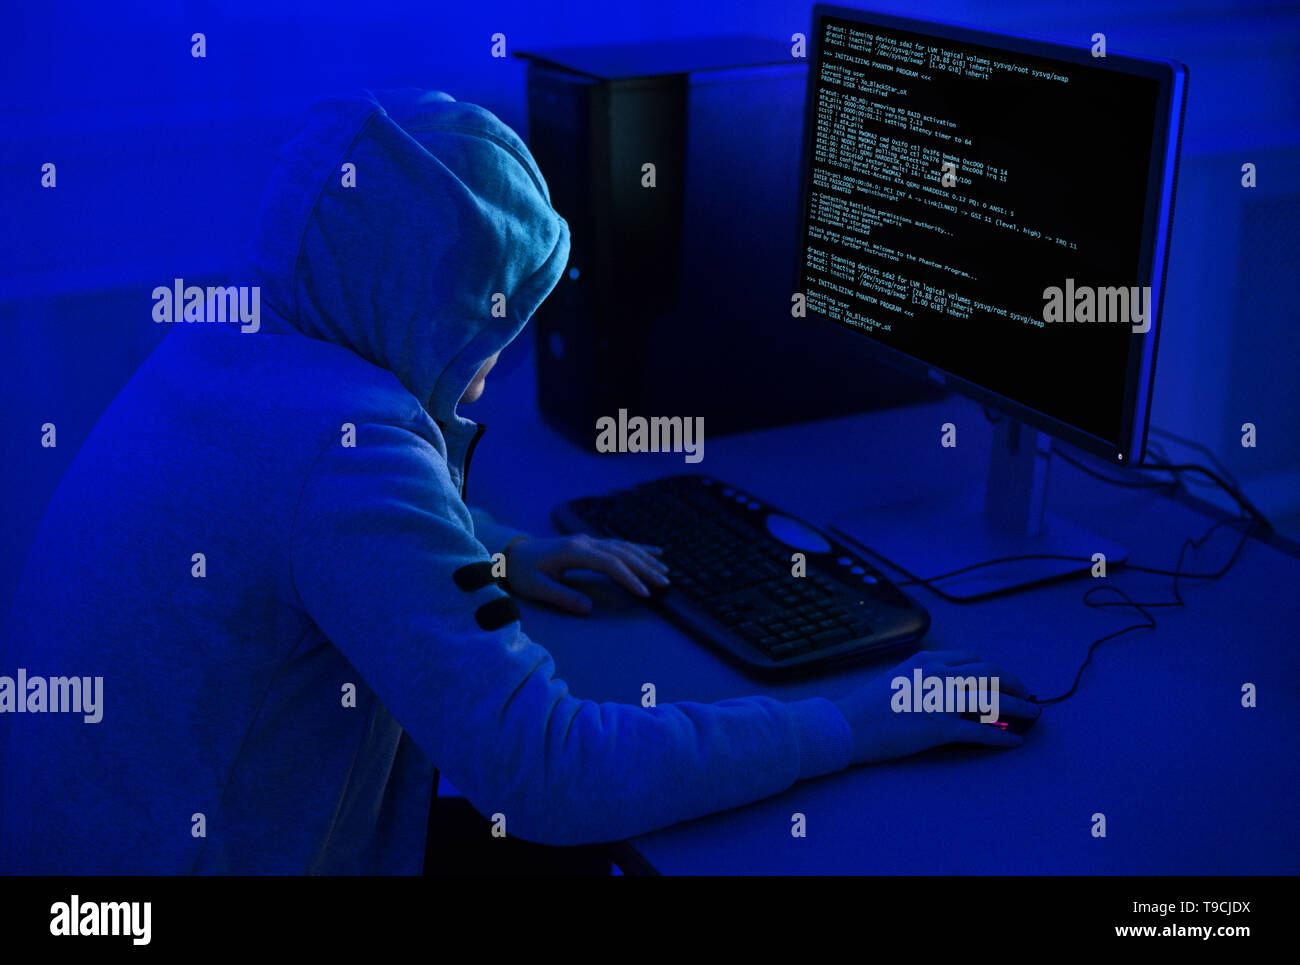 Cybercrime and Hacking Concept. Hacker Using Computer Virus Program - Stock Image